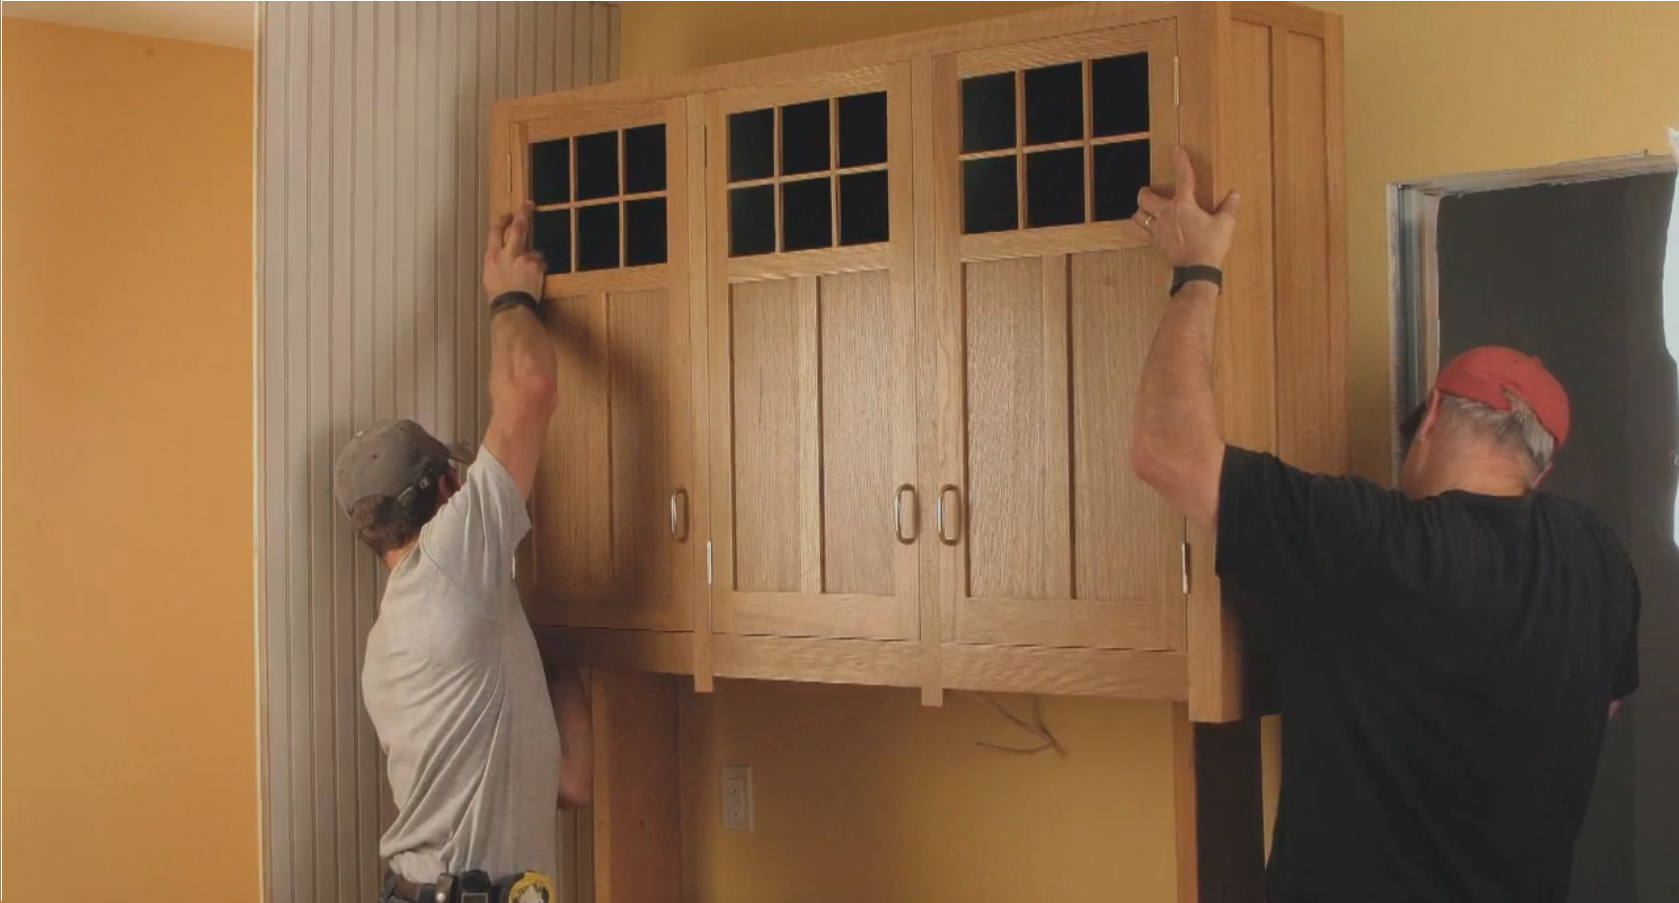 Exceptionnel Master Carpenter Video: How To Fit Inset Cabinet Doors   Fine Homebuilding